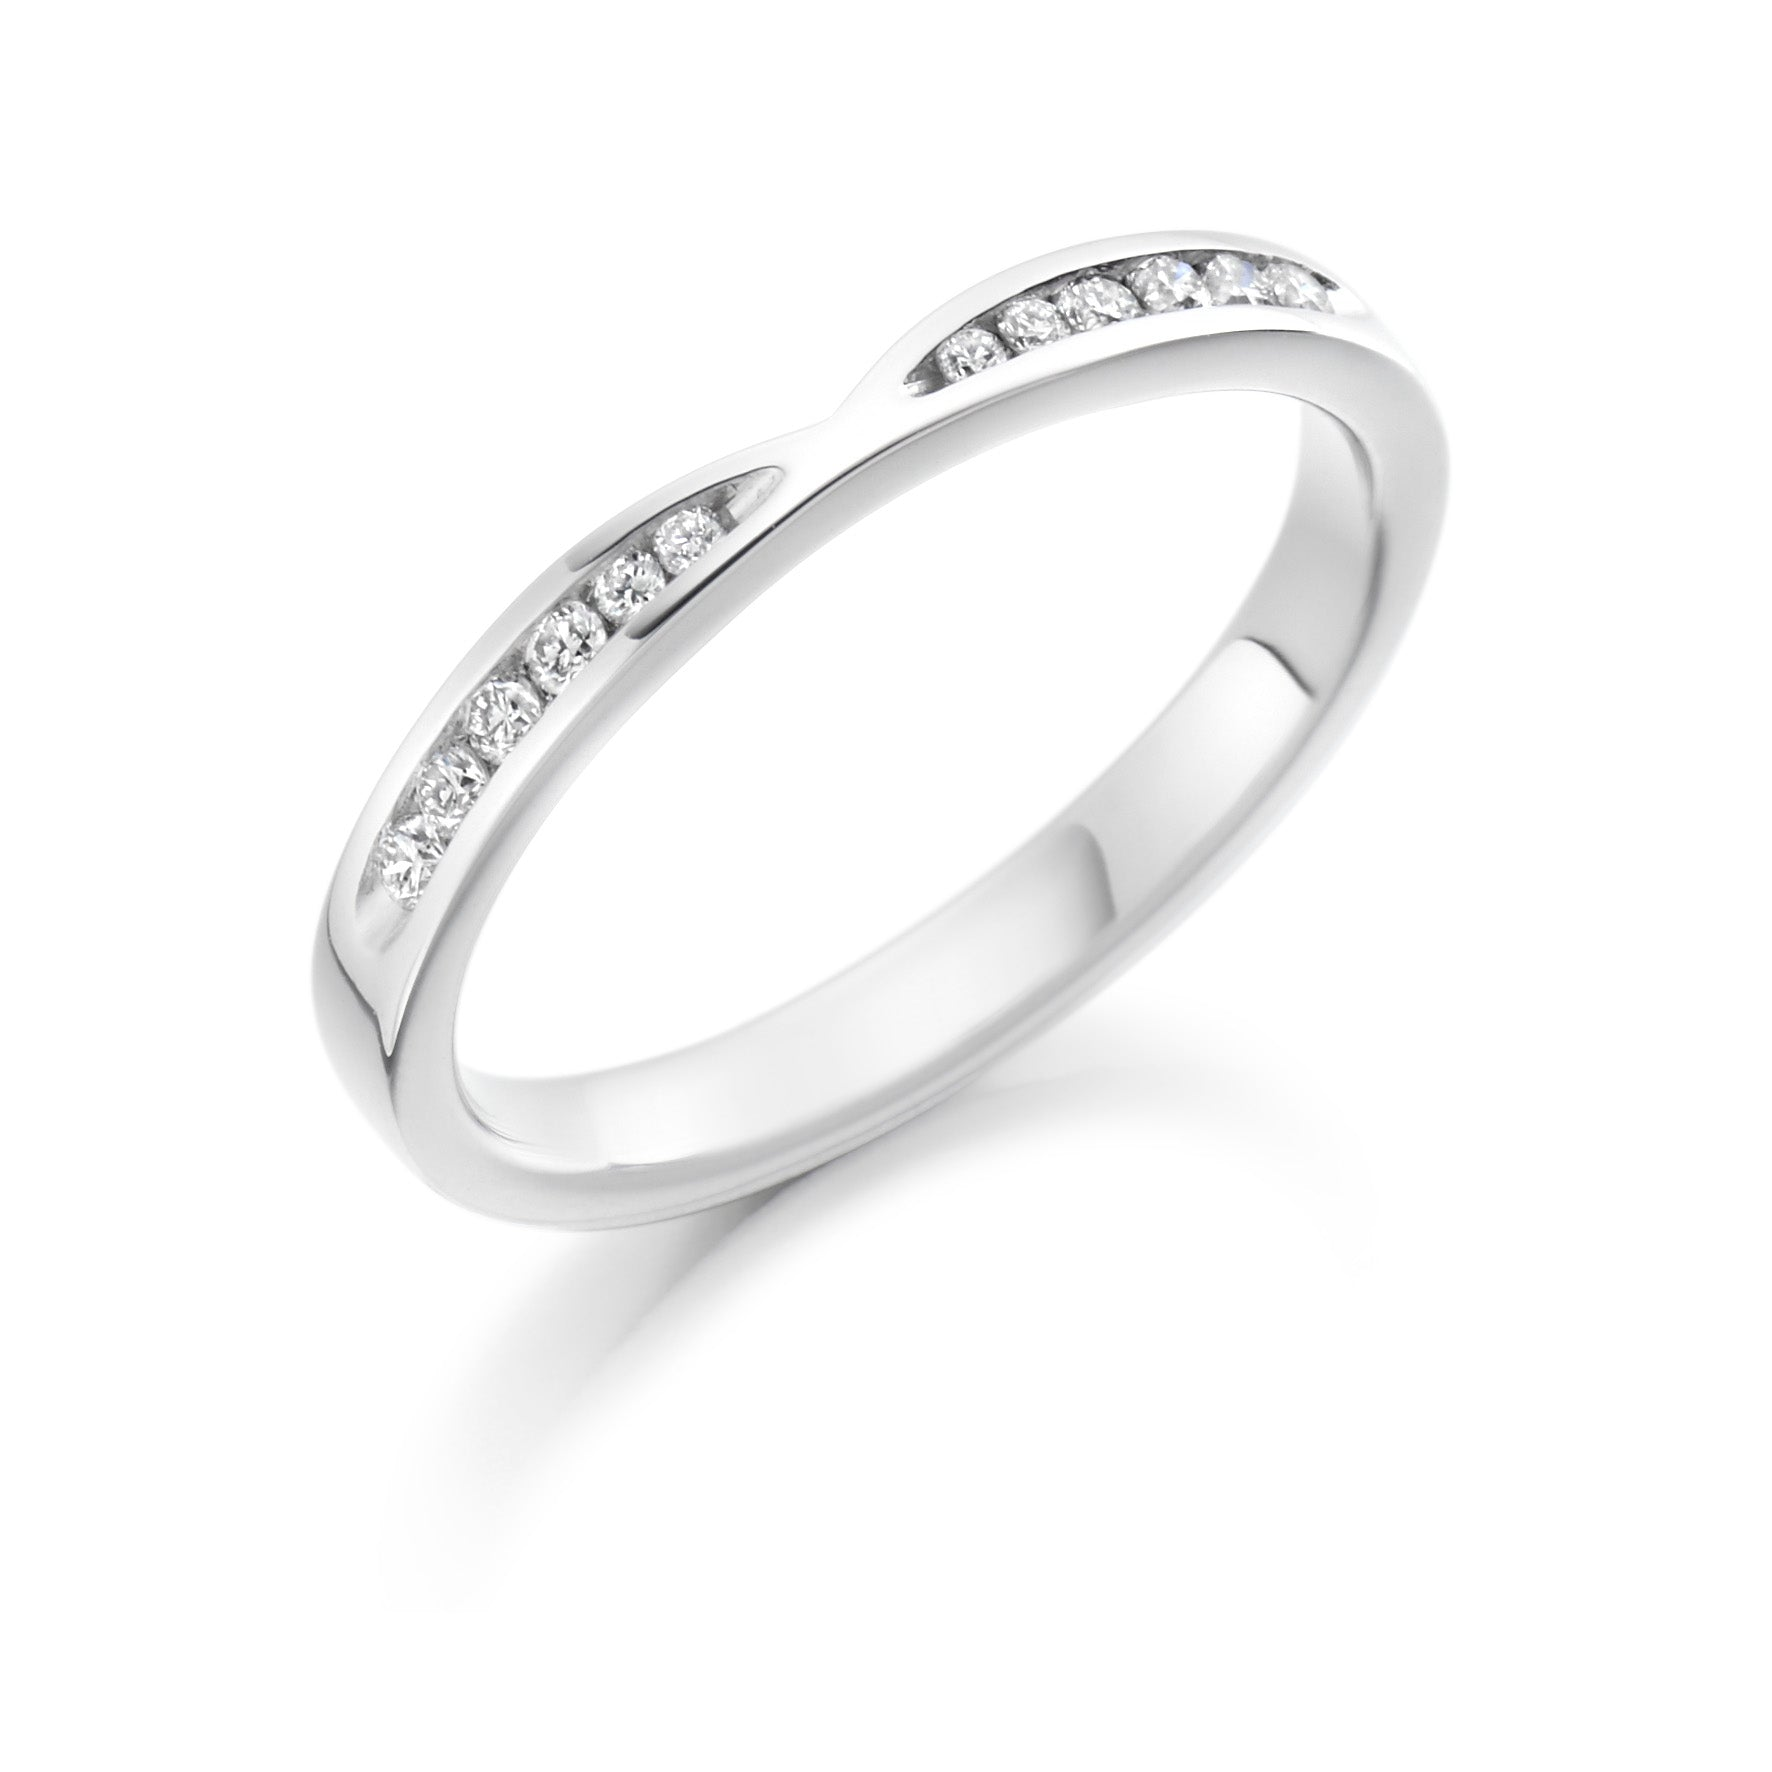 0.18ct Round Brilliant Cut Diamonds Curved Band - Eternity Ring - (Home Try-On)